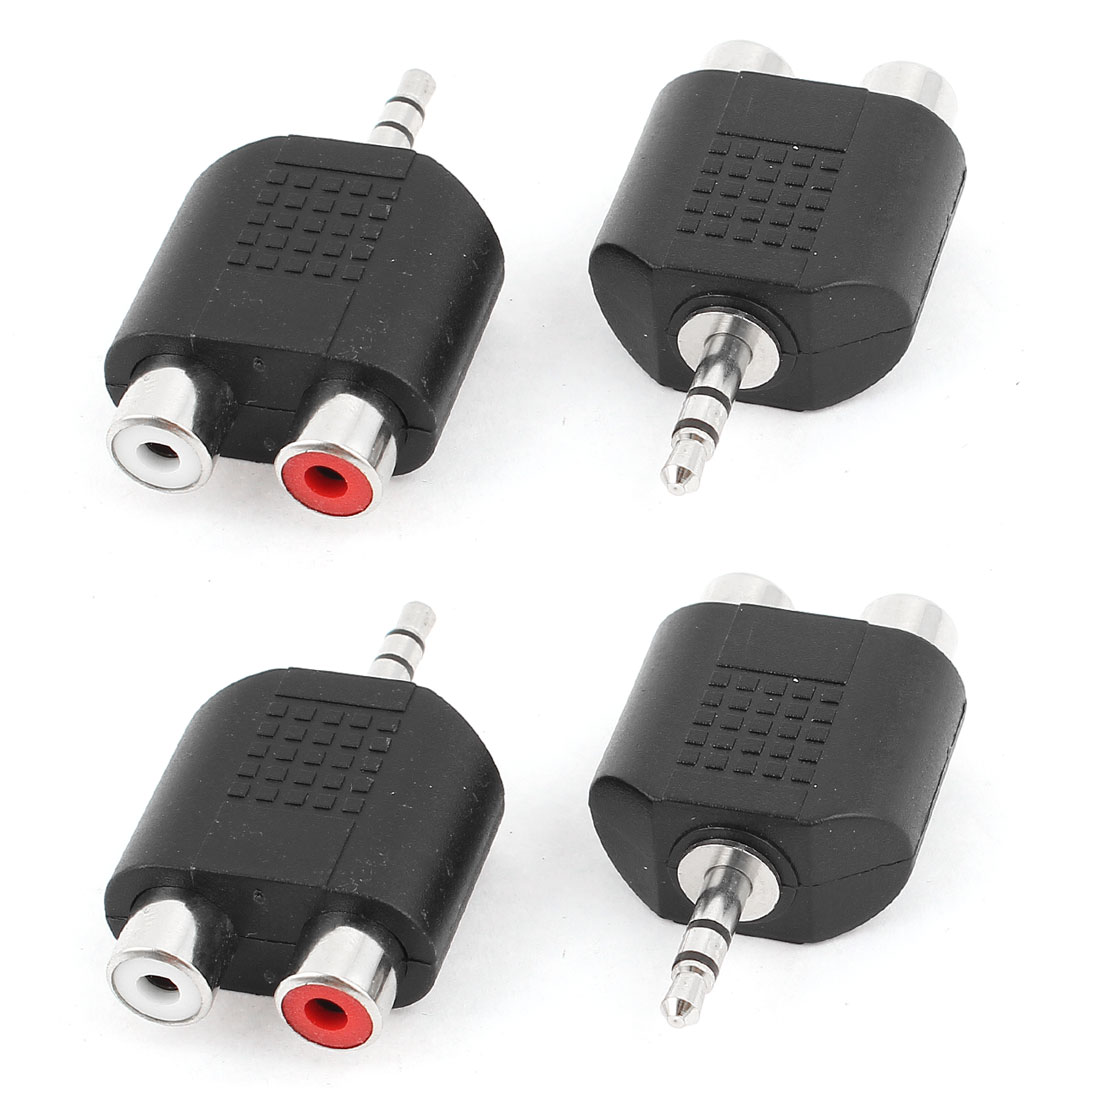 4pcs 3.5mm Diameter Male to Dual RCA Female Jacks Audio Adapter